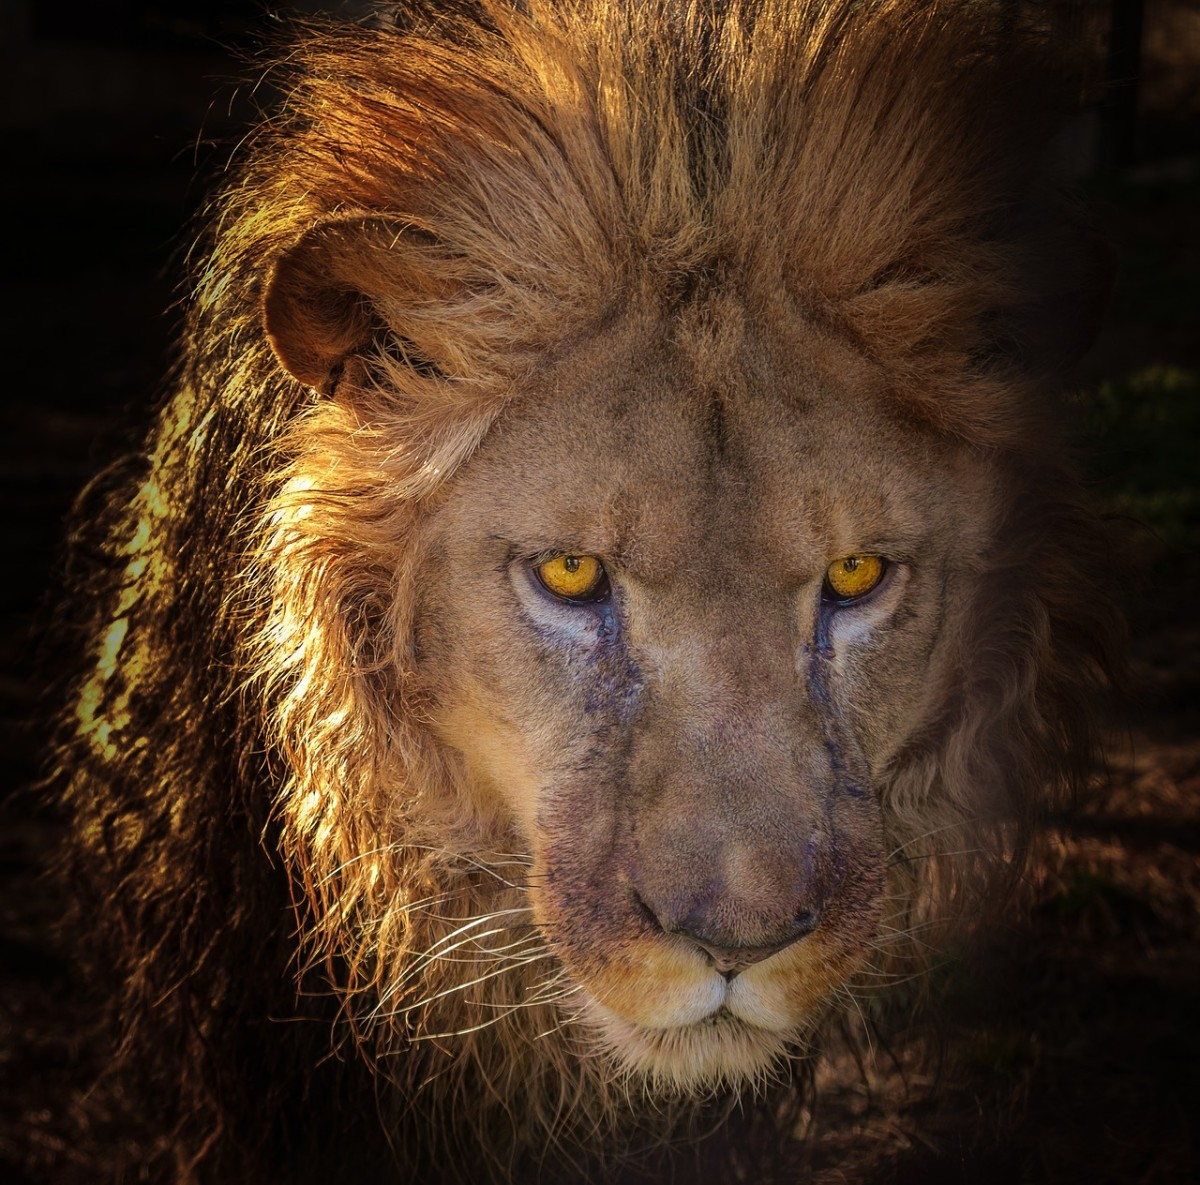 Aslan, the lion from the Chronicles of Narnia